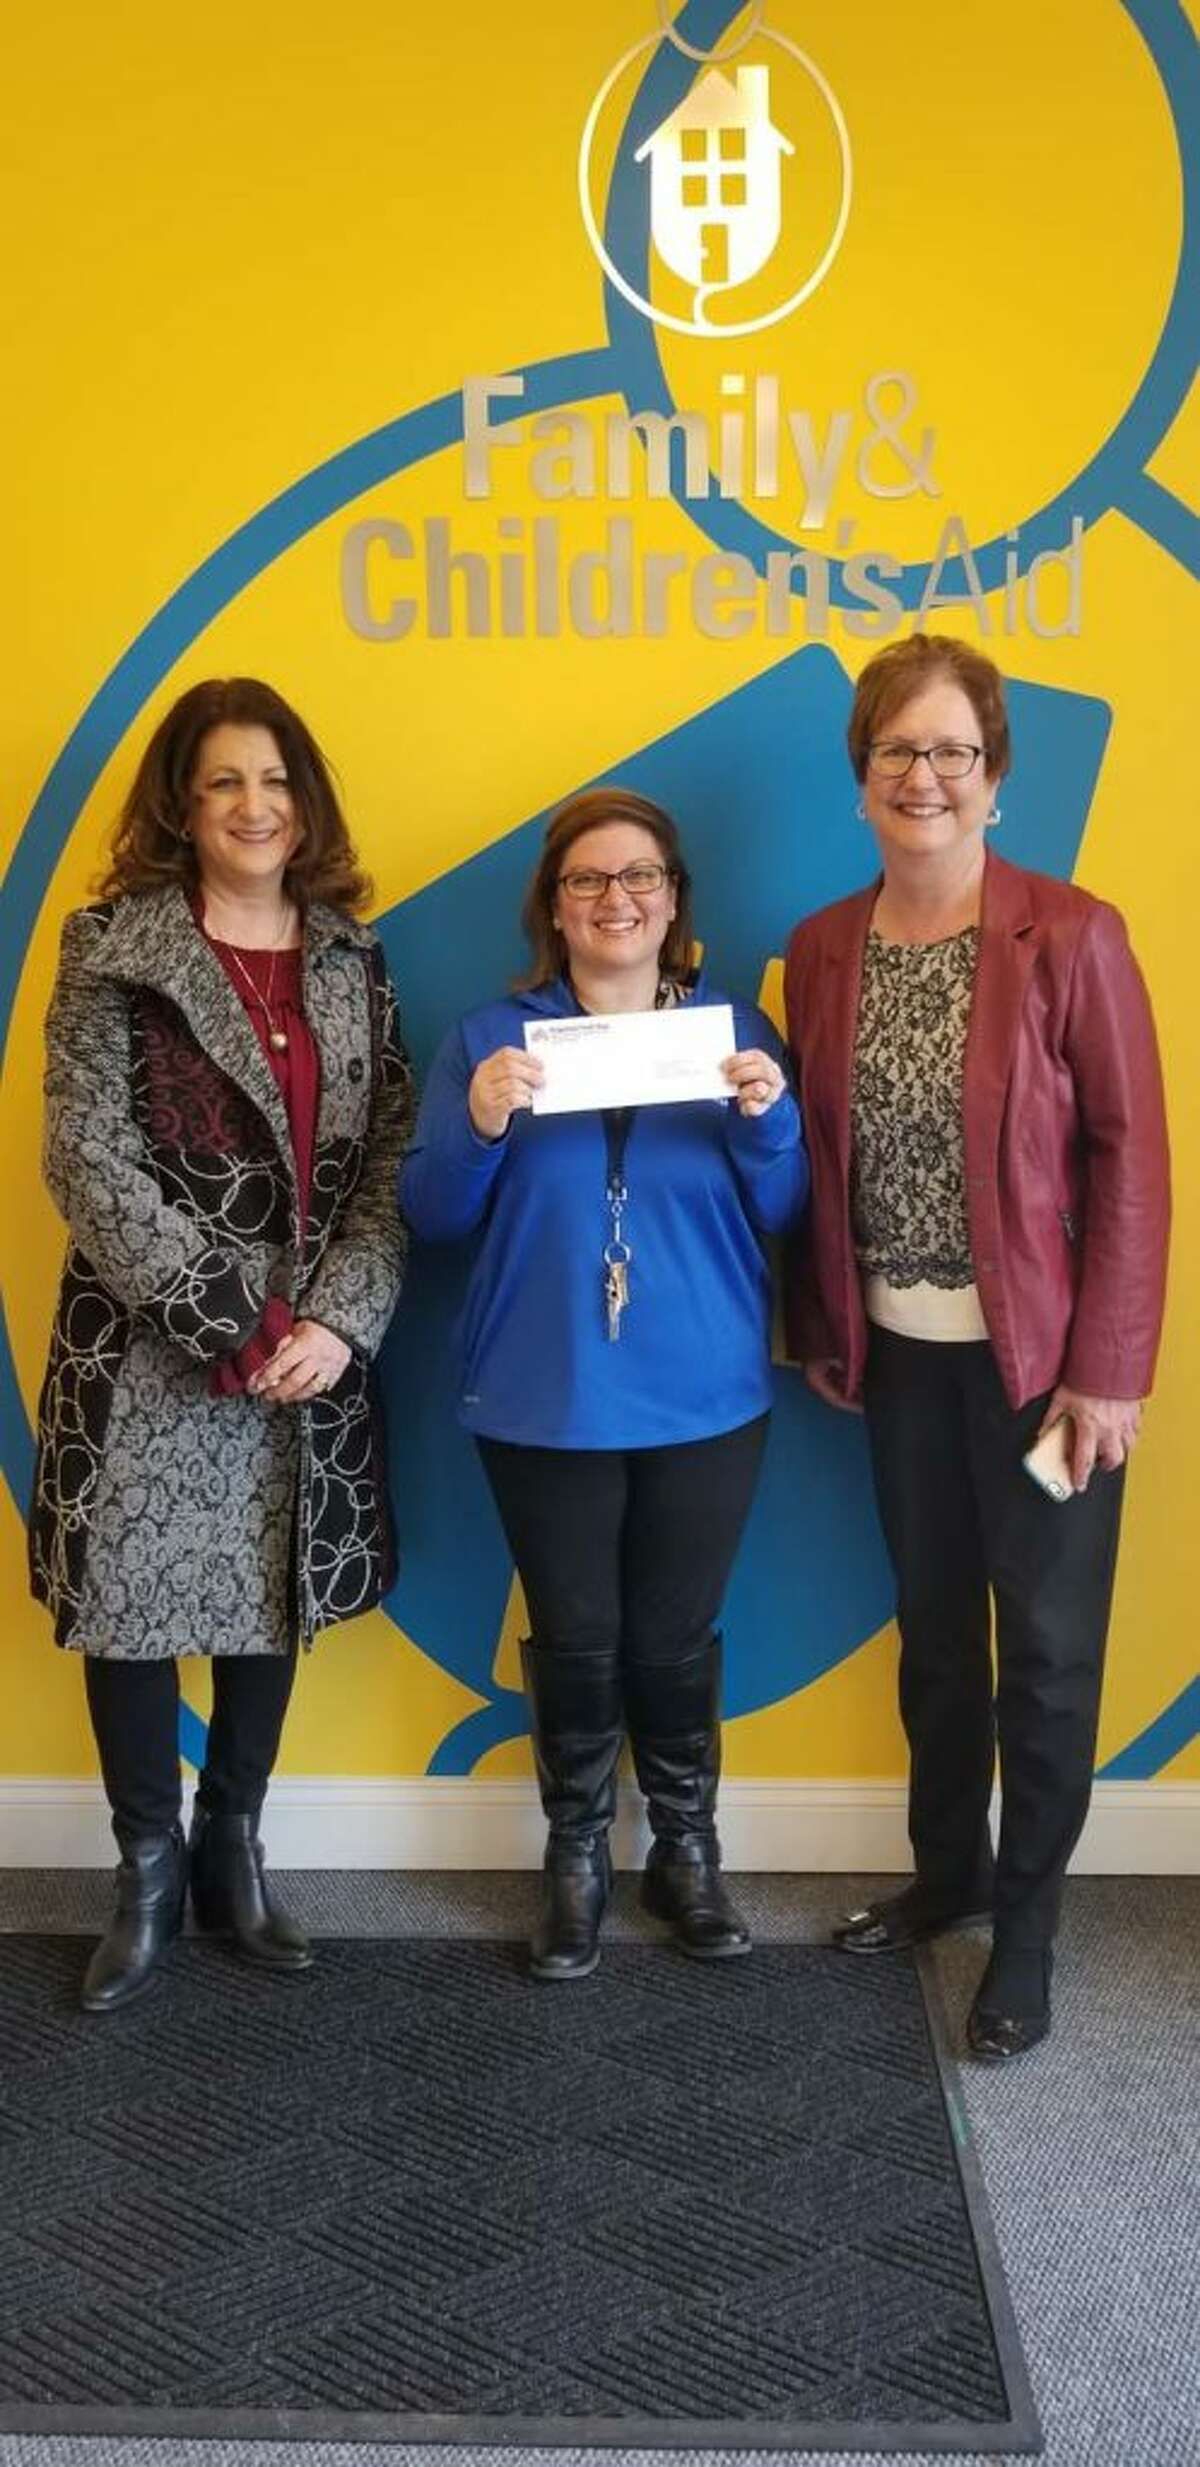 From left to right: Sandra Capriotti, Ridgefield Thrift Shop president; Allison Carballo, director of development for Family and Children's Aid (FCA); and Debbie Murphy, Thrift Shop finance committee chair. The grant from the Thrift Shop will support FCA's mission, services and programs, and benefit clients in need.